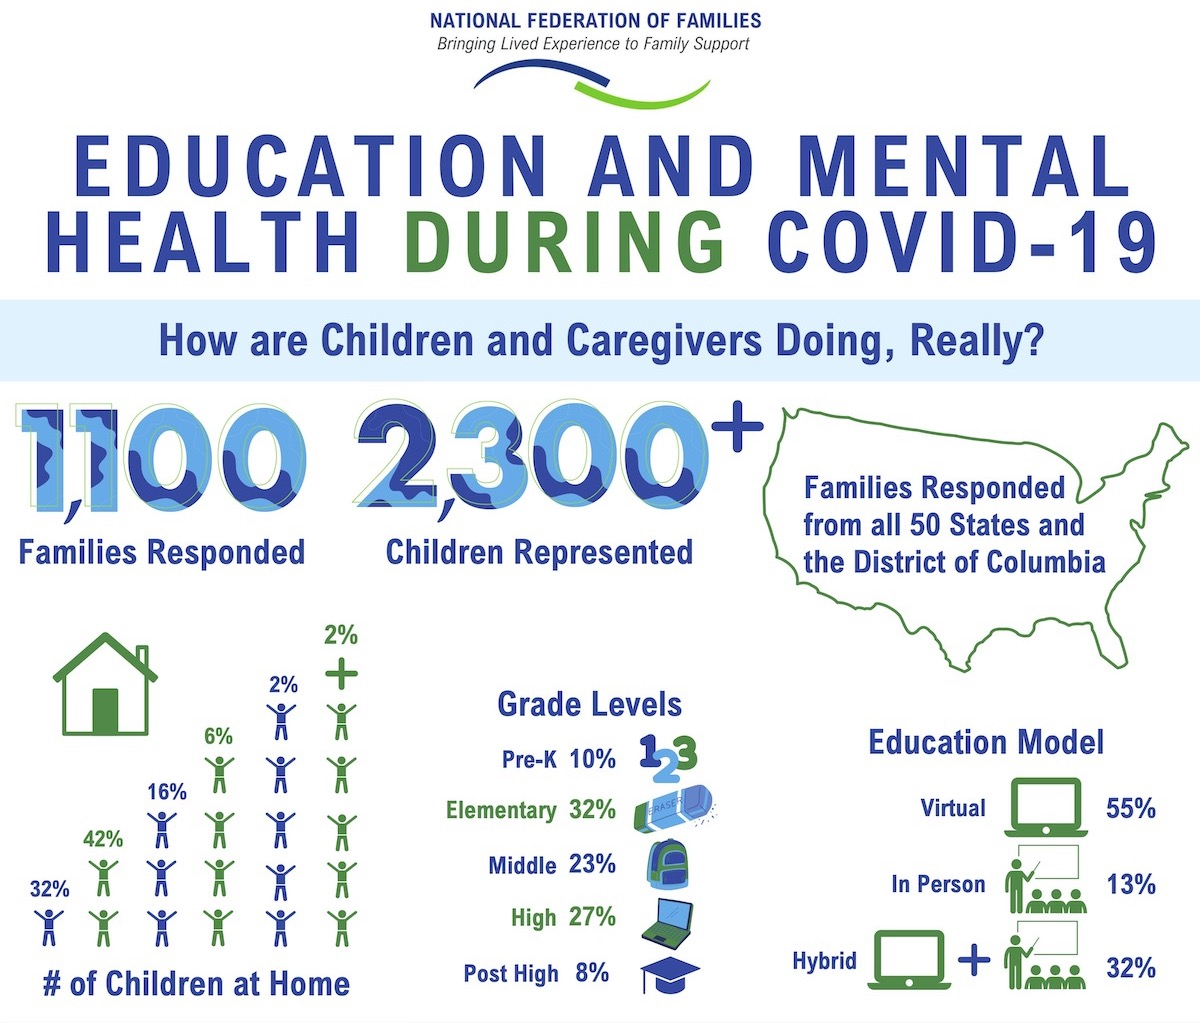 Education and Mental Health During COVID-19 - Infographic